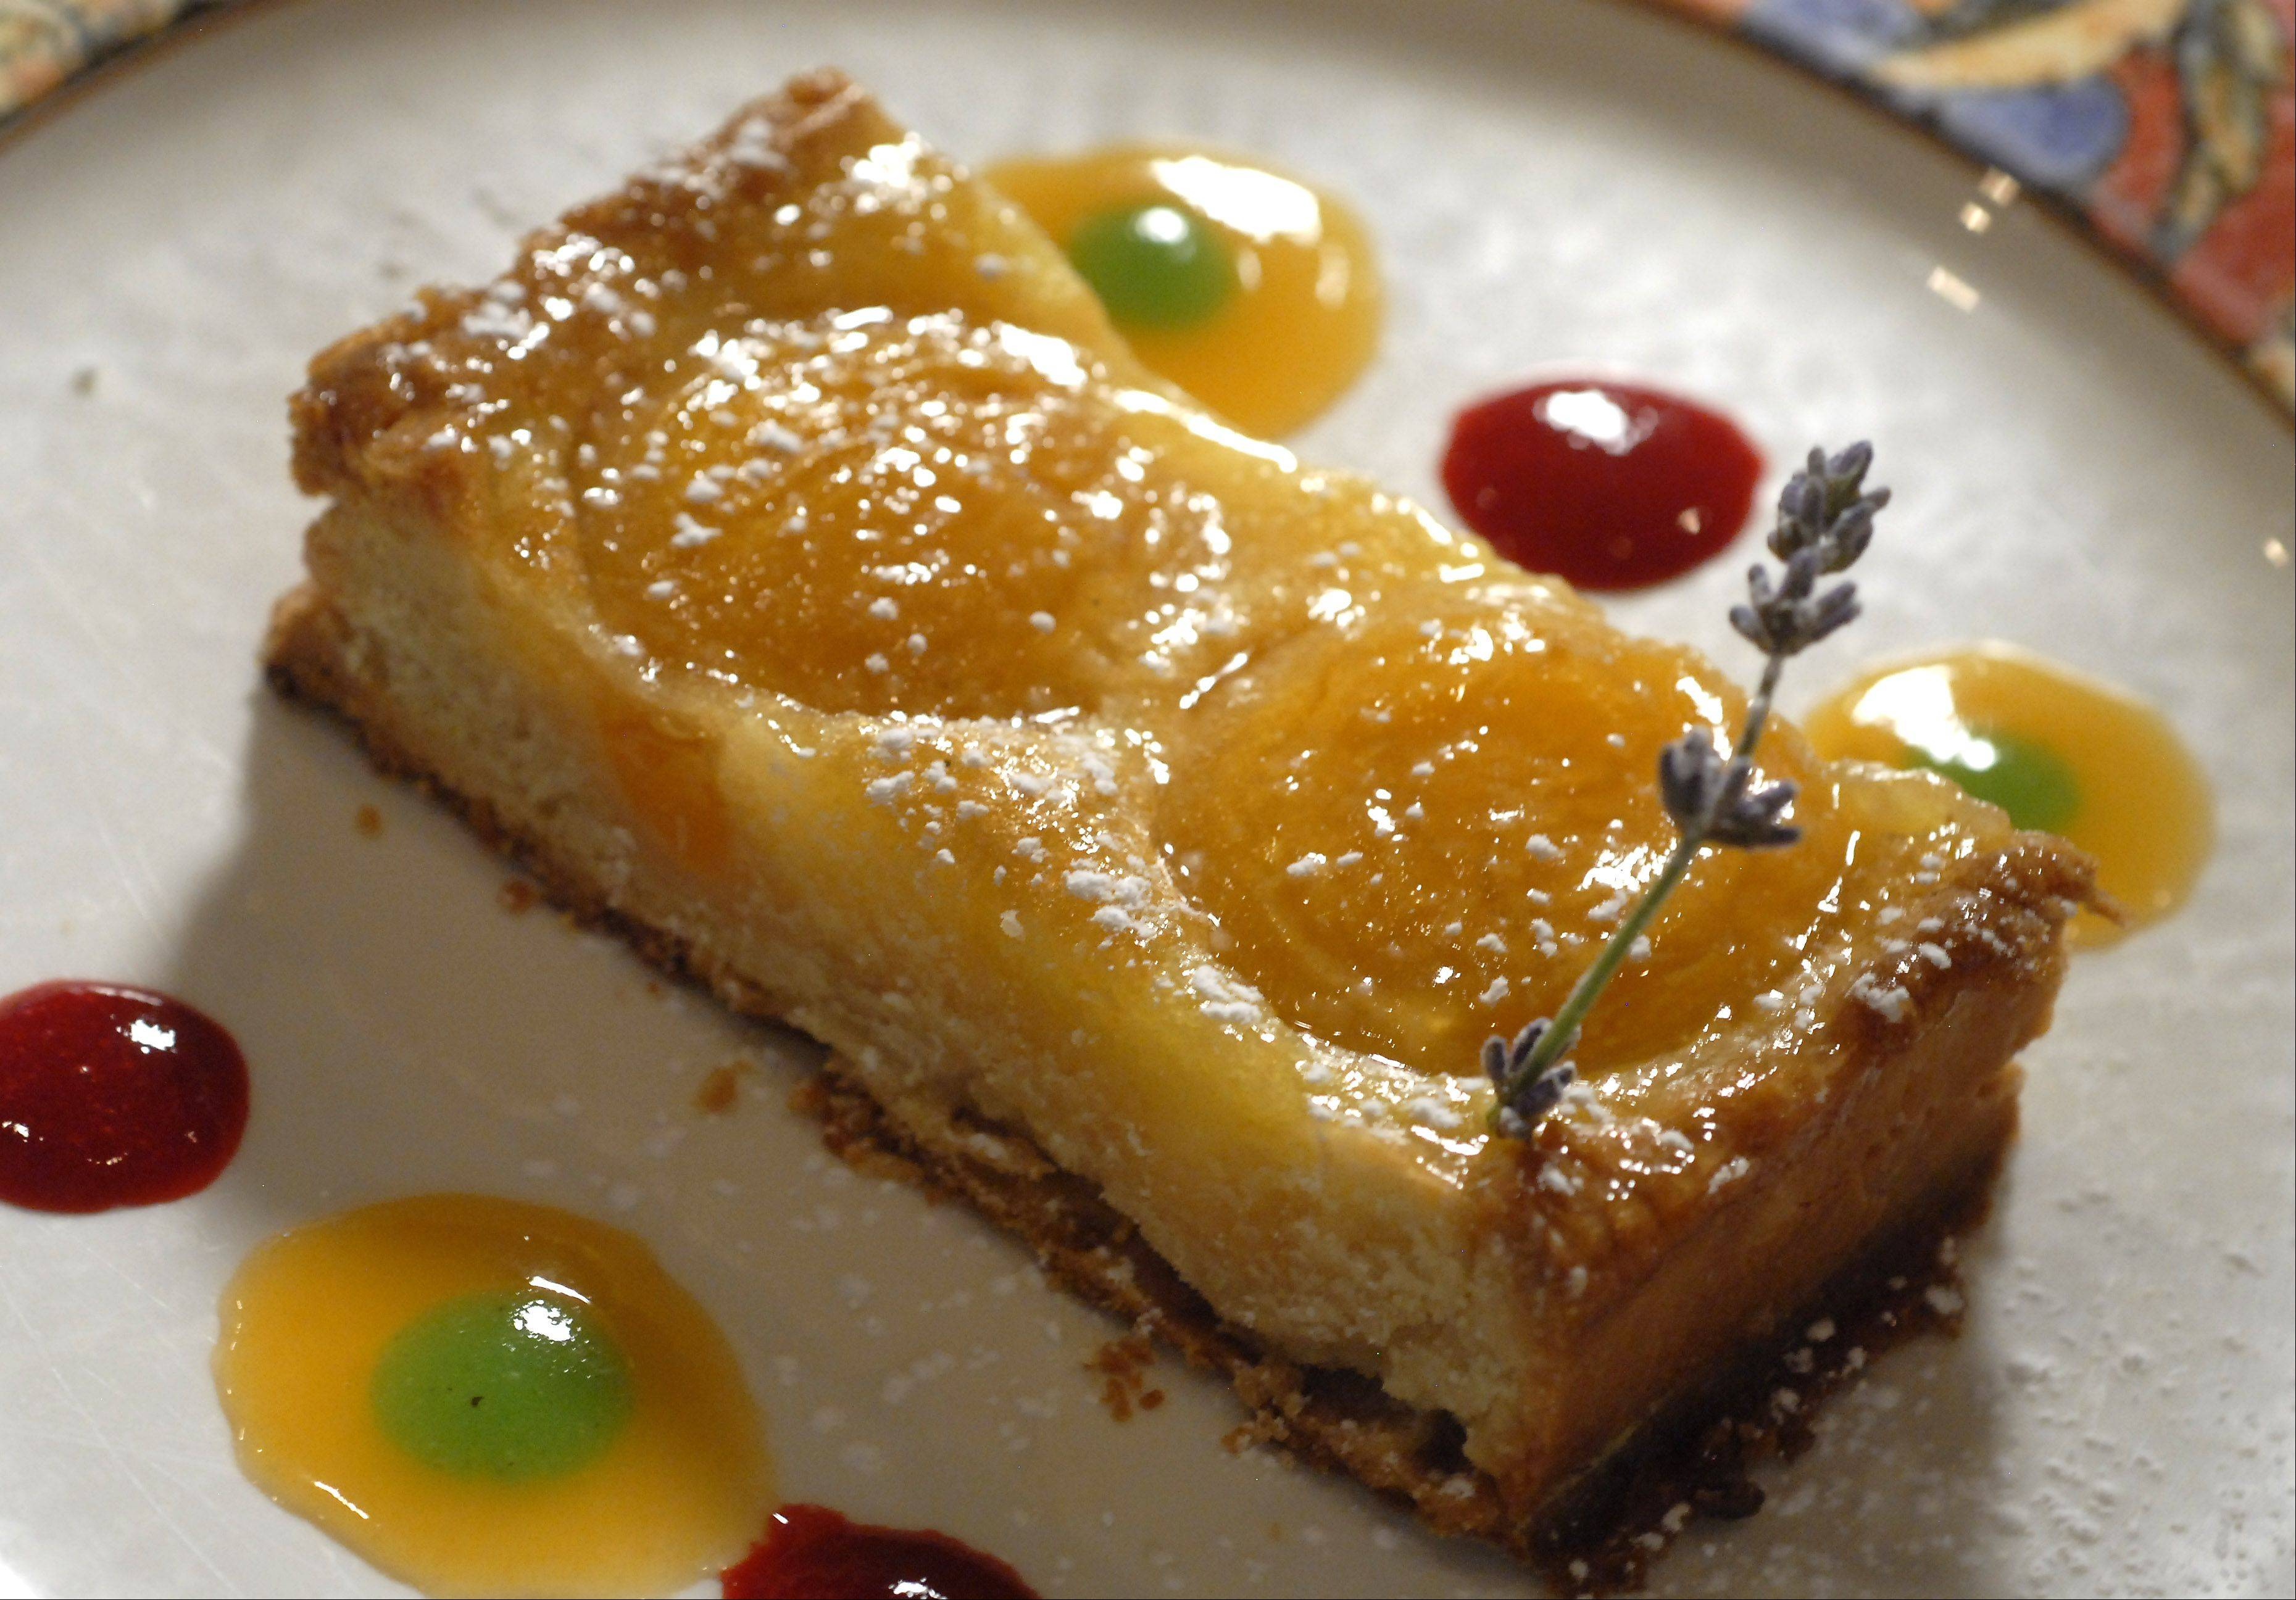 Apricot tart by Chef Michael Maddox at Le titi de Paris restaurant in Arlington Heights.